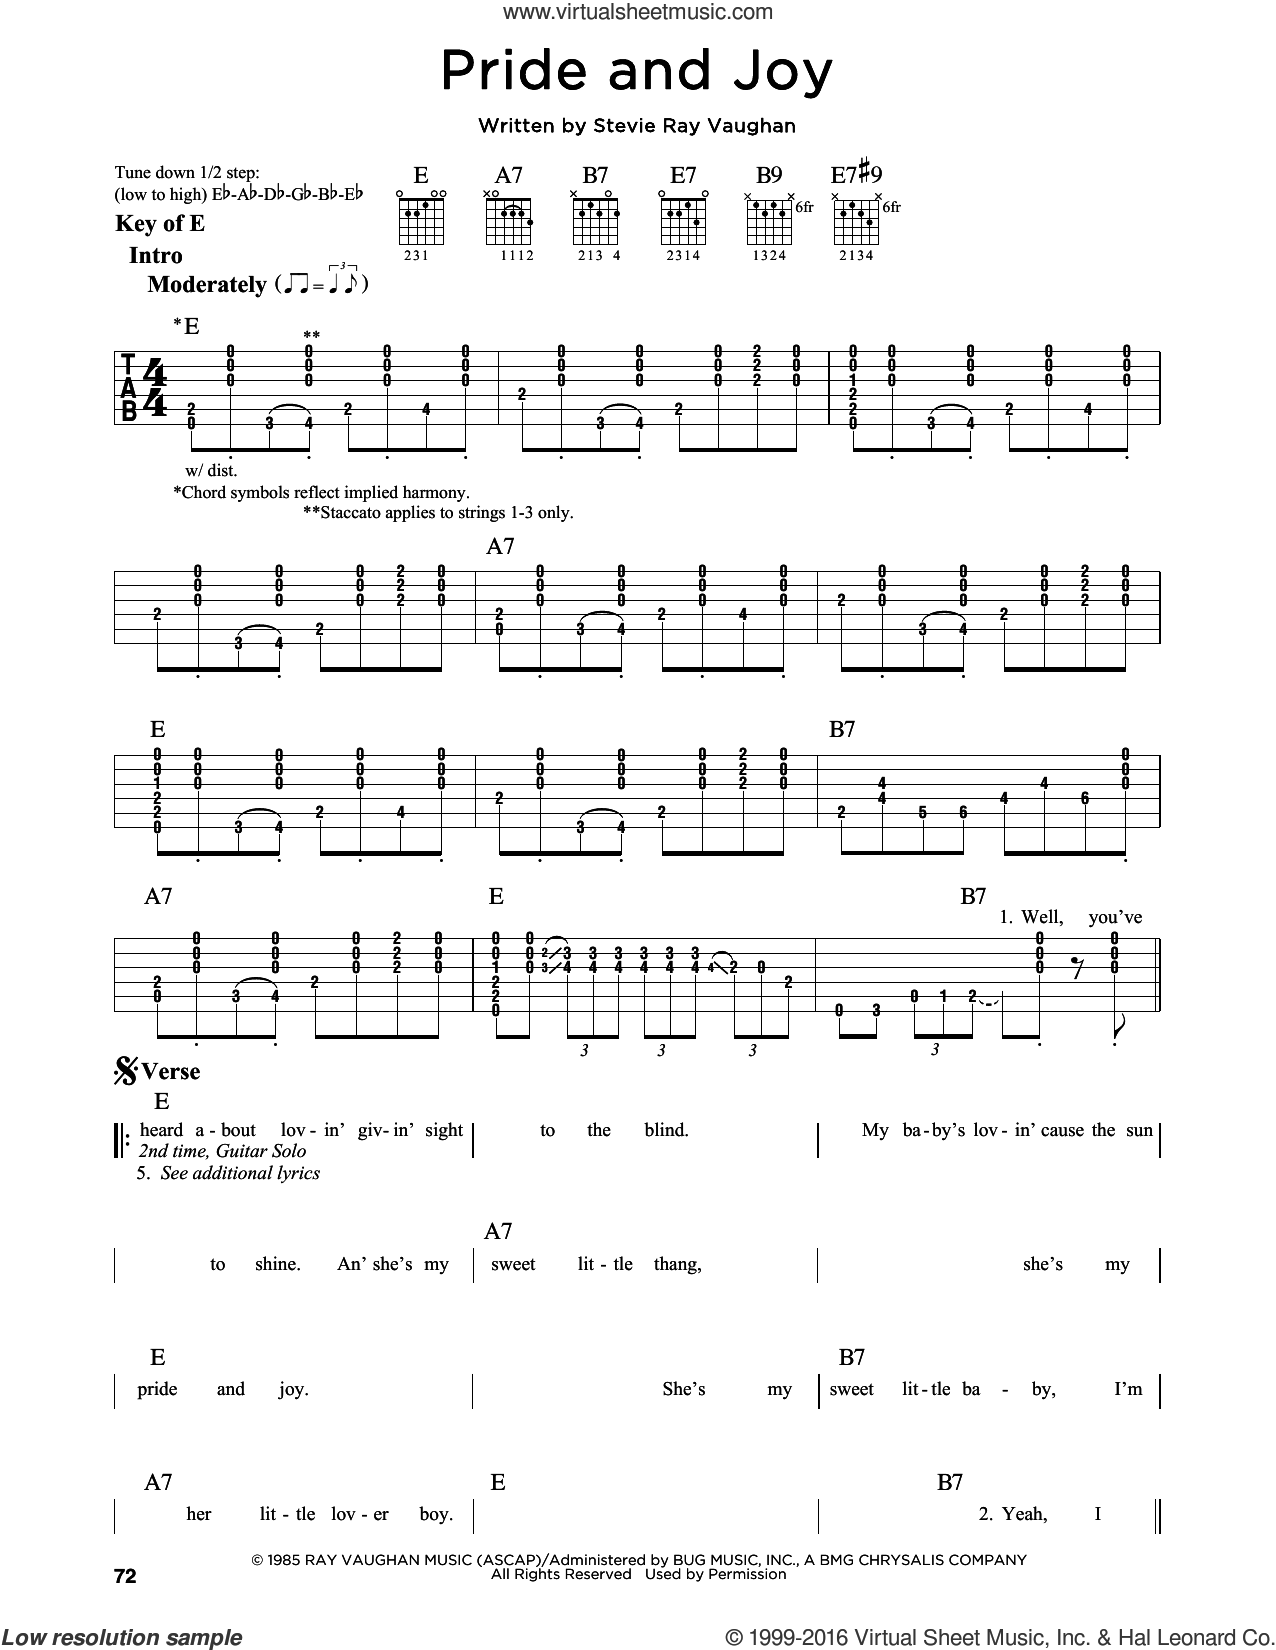 Pride And Joy sheet music for guitar solo (lead sheet) by Stevie Ray Vaughan. Score Image Preview.